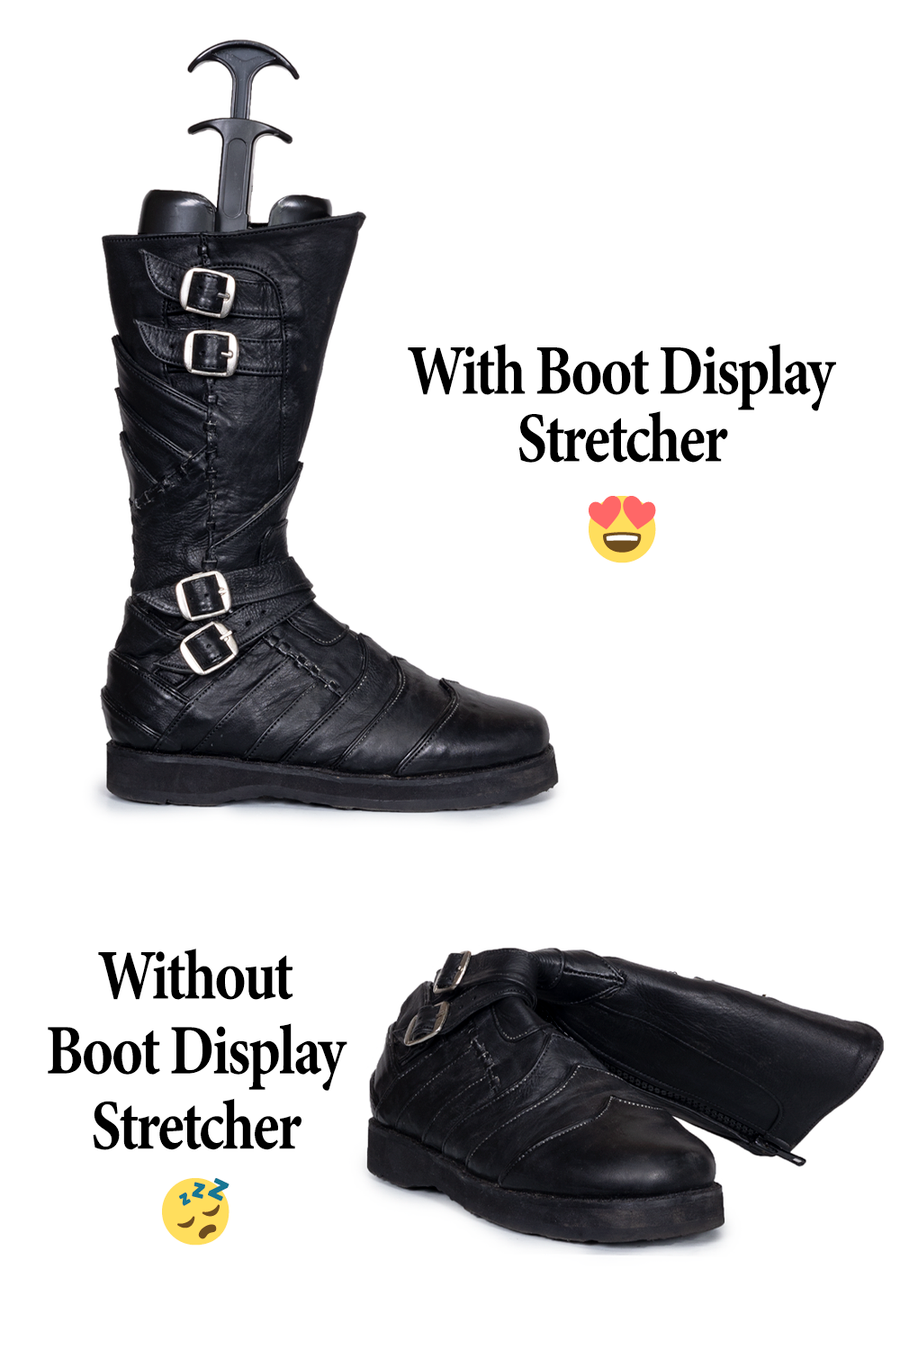 Vajra Moto Boot with and without Boot Display Stretcher